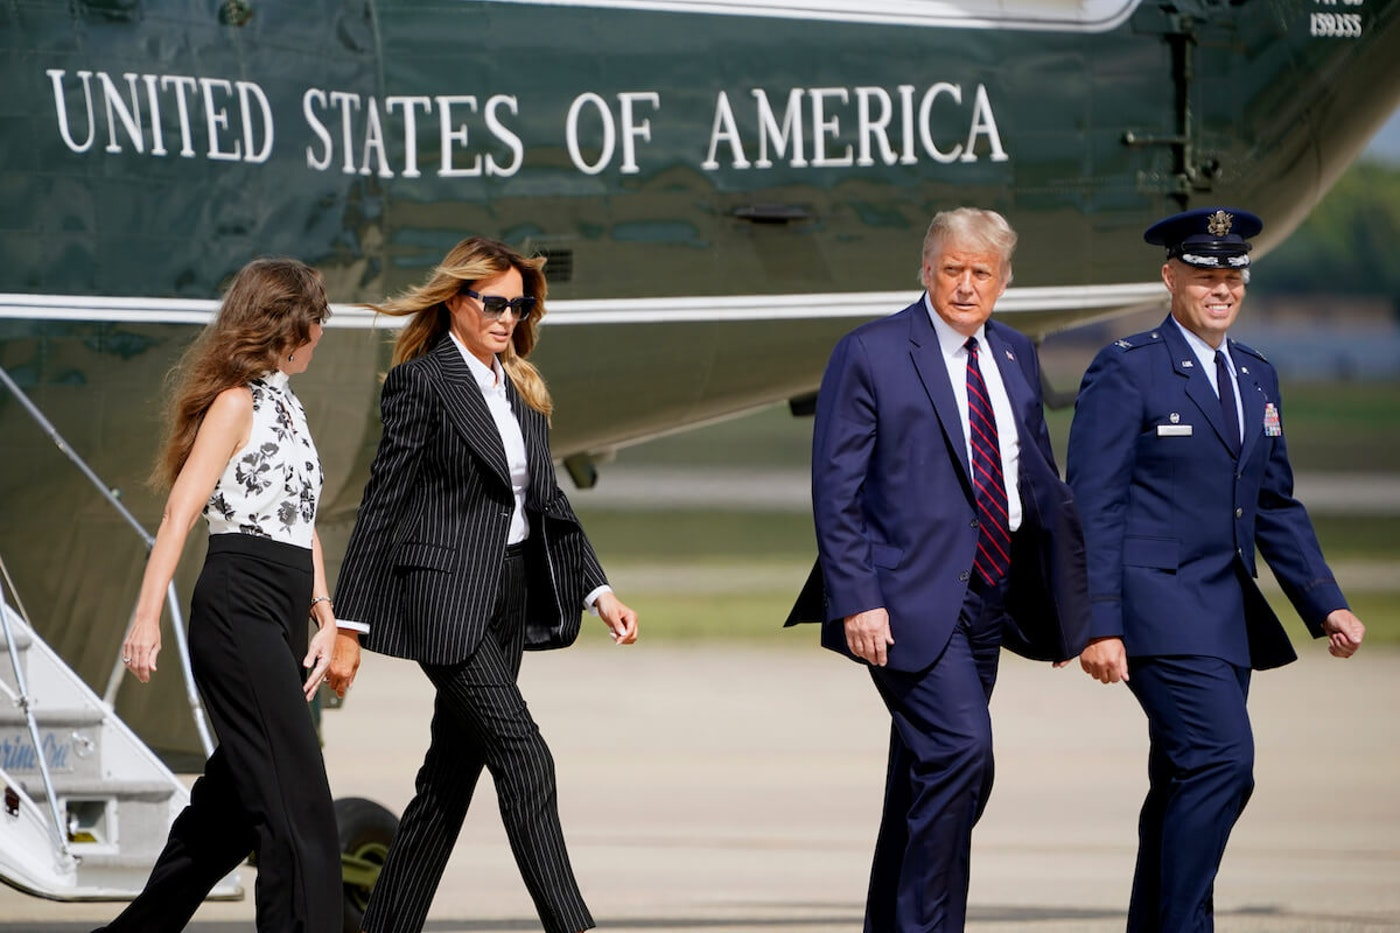 President Donald Trump and first lady Melania Trump walk to board Air Force One to travel to the first presidential debate in Cleveland, Tuesday, Sept. 29, 2020, in Andrews Air Force Base, Md.